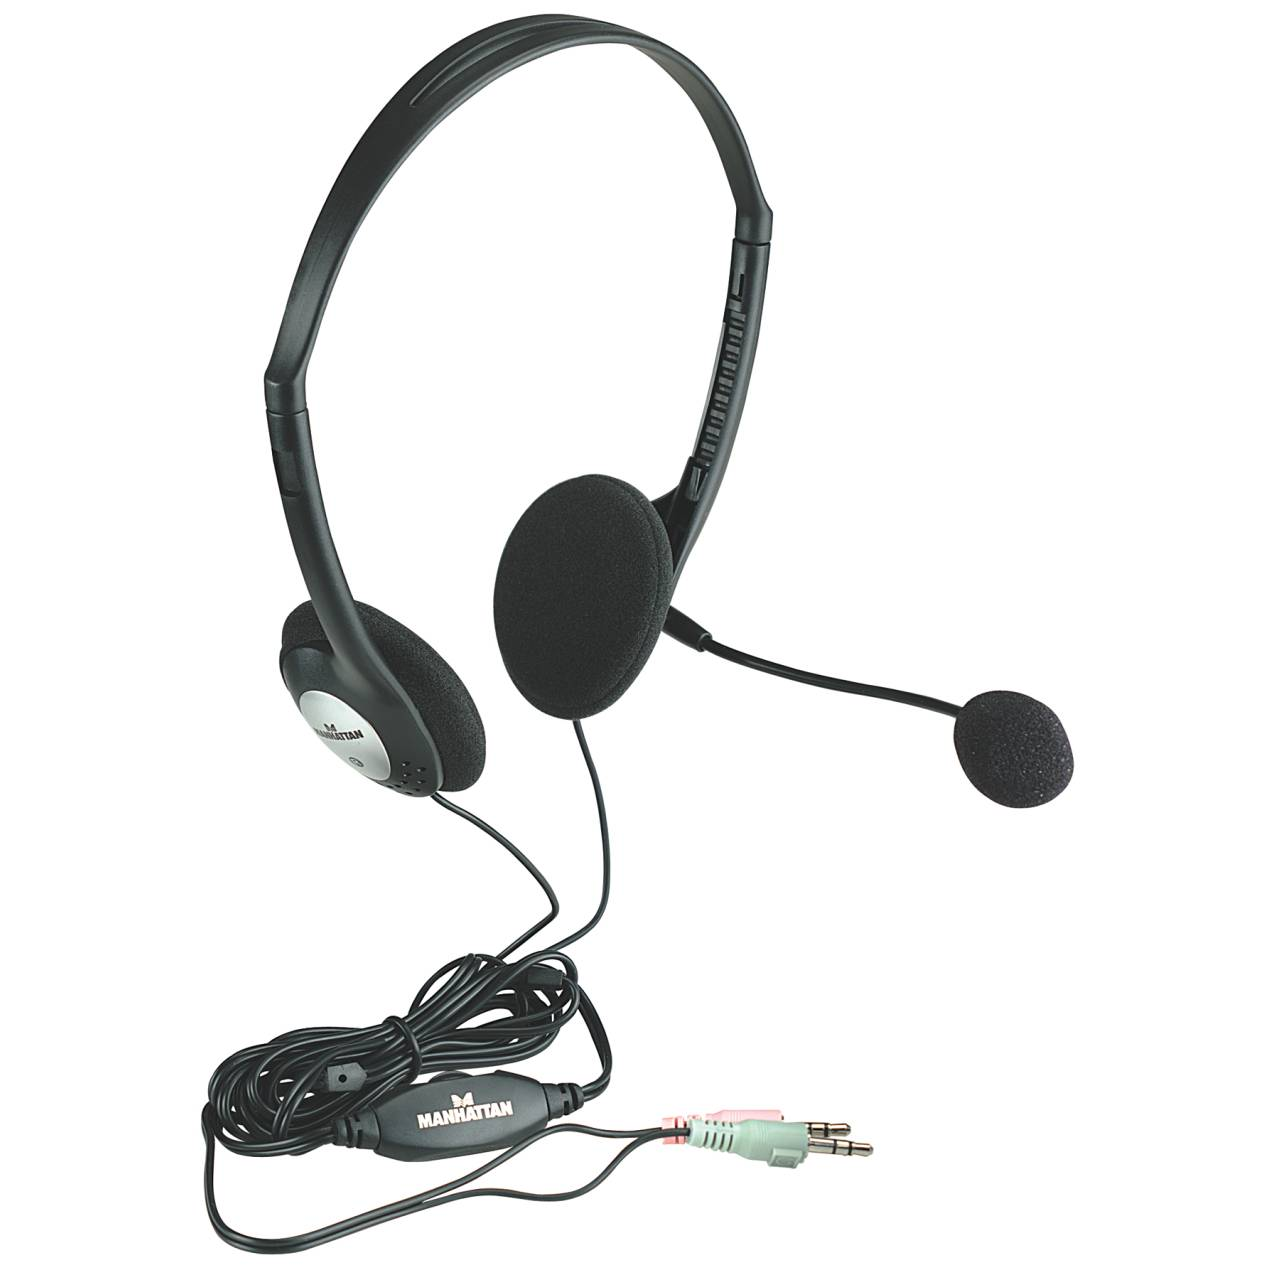 Noise cancelling adapter for earphones - wireless earphones noise cancelling